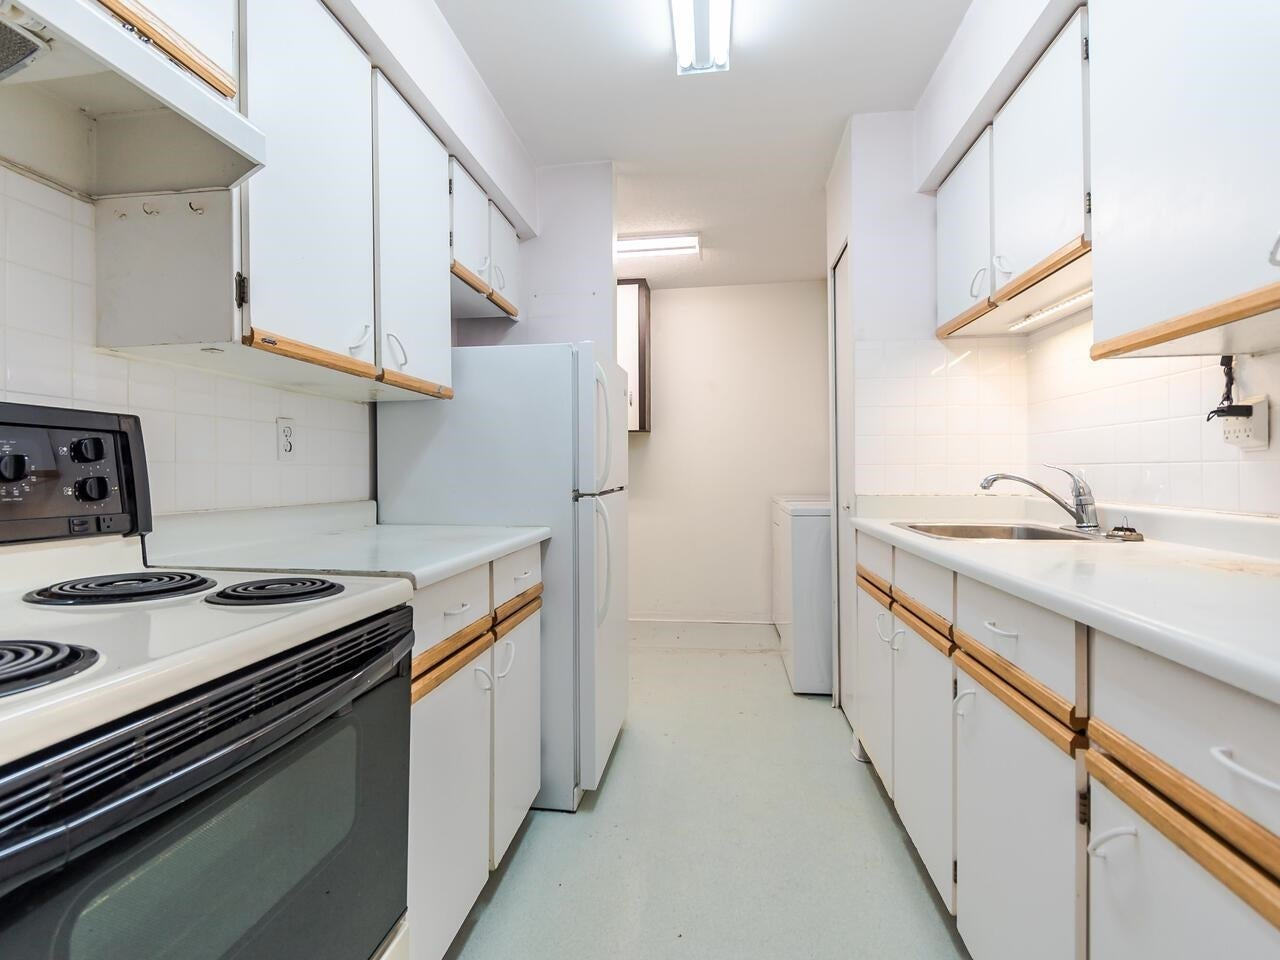 107 5191 203 STREET - Langley City Apartment/Condo for sale, 2 Bedrooms (R2625712) - #6